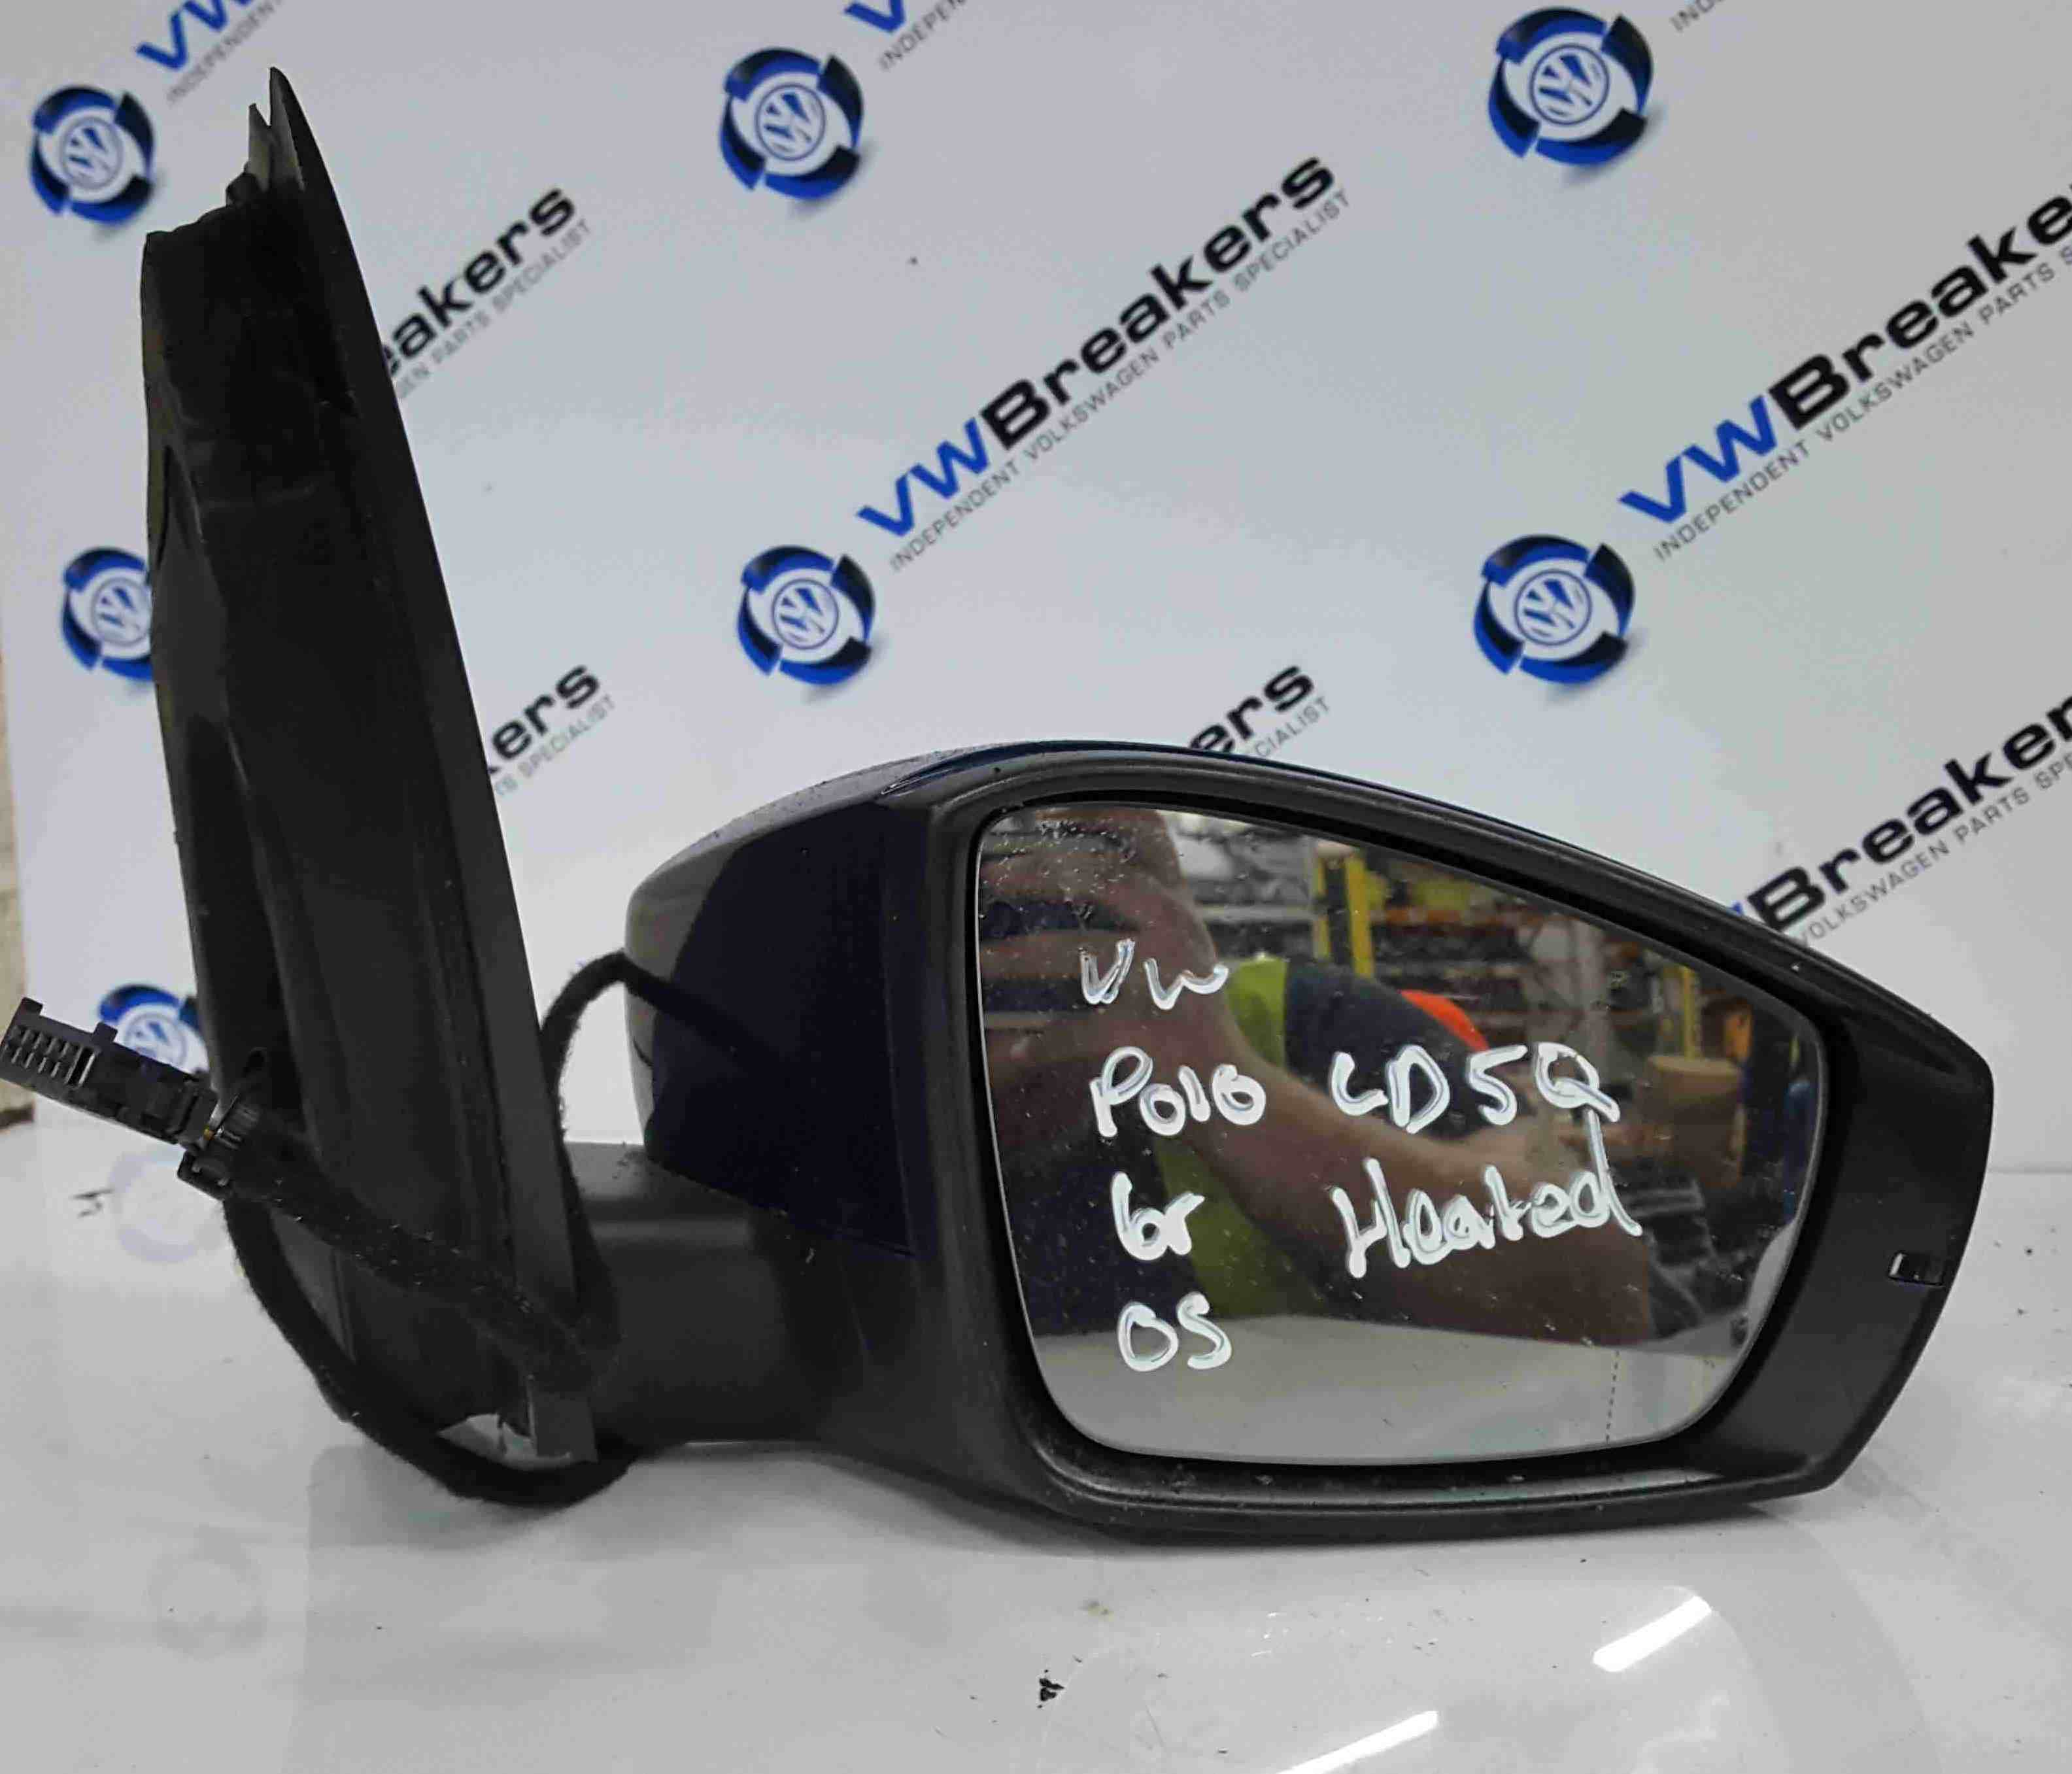 Volkswagen Polo 6R 2009-2014 Drivers OS Wing Mirror Blue LD5Q Heated